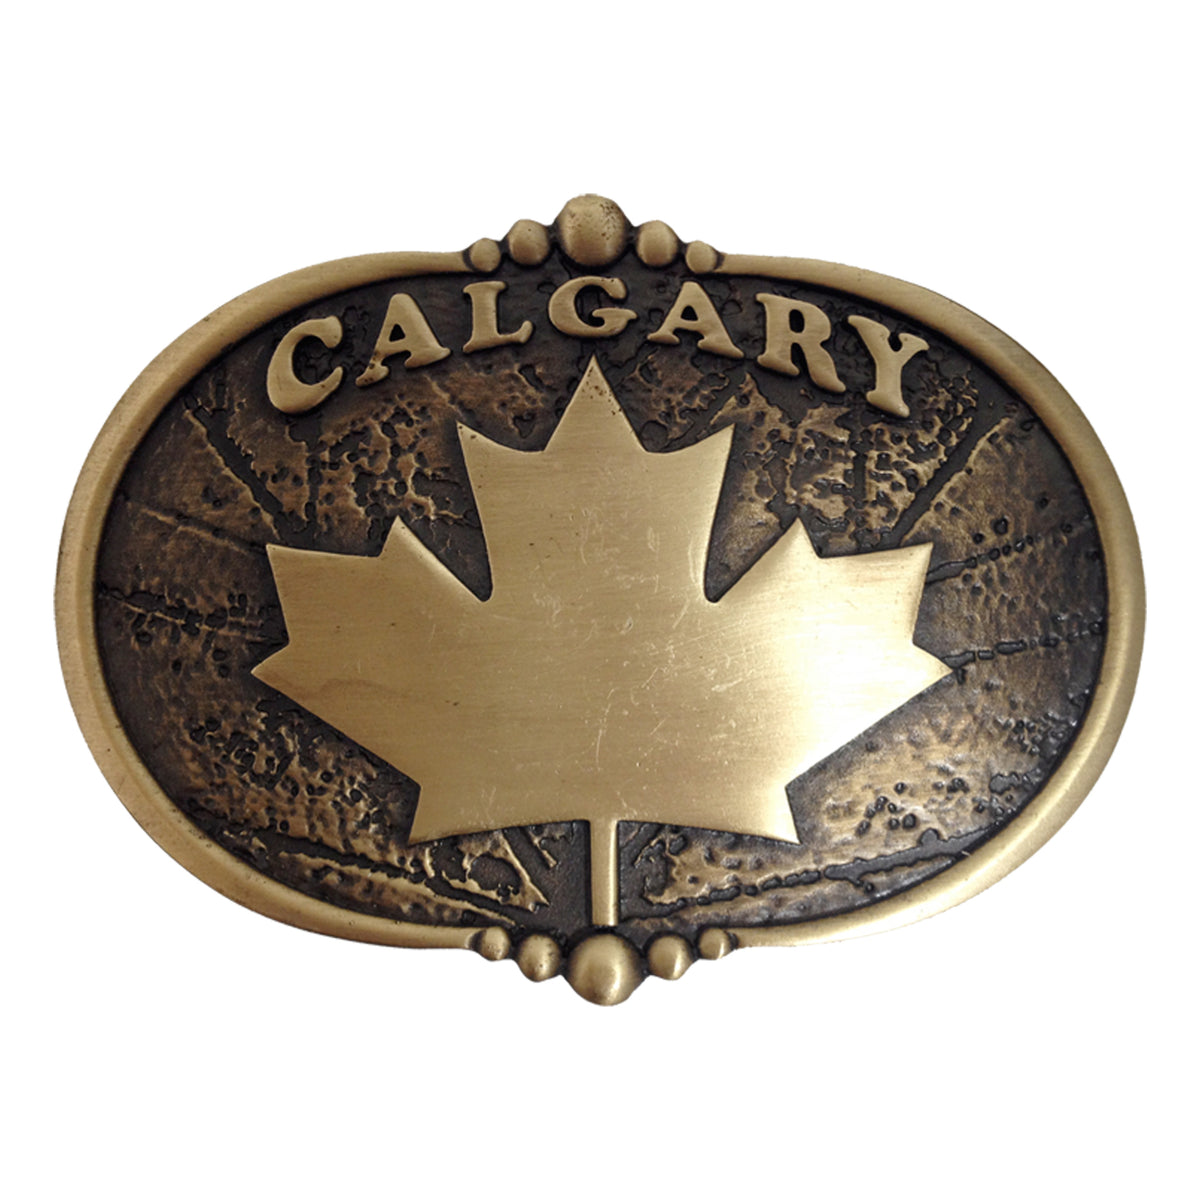 Calgary with Maple Leaf Buckle